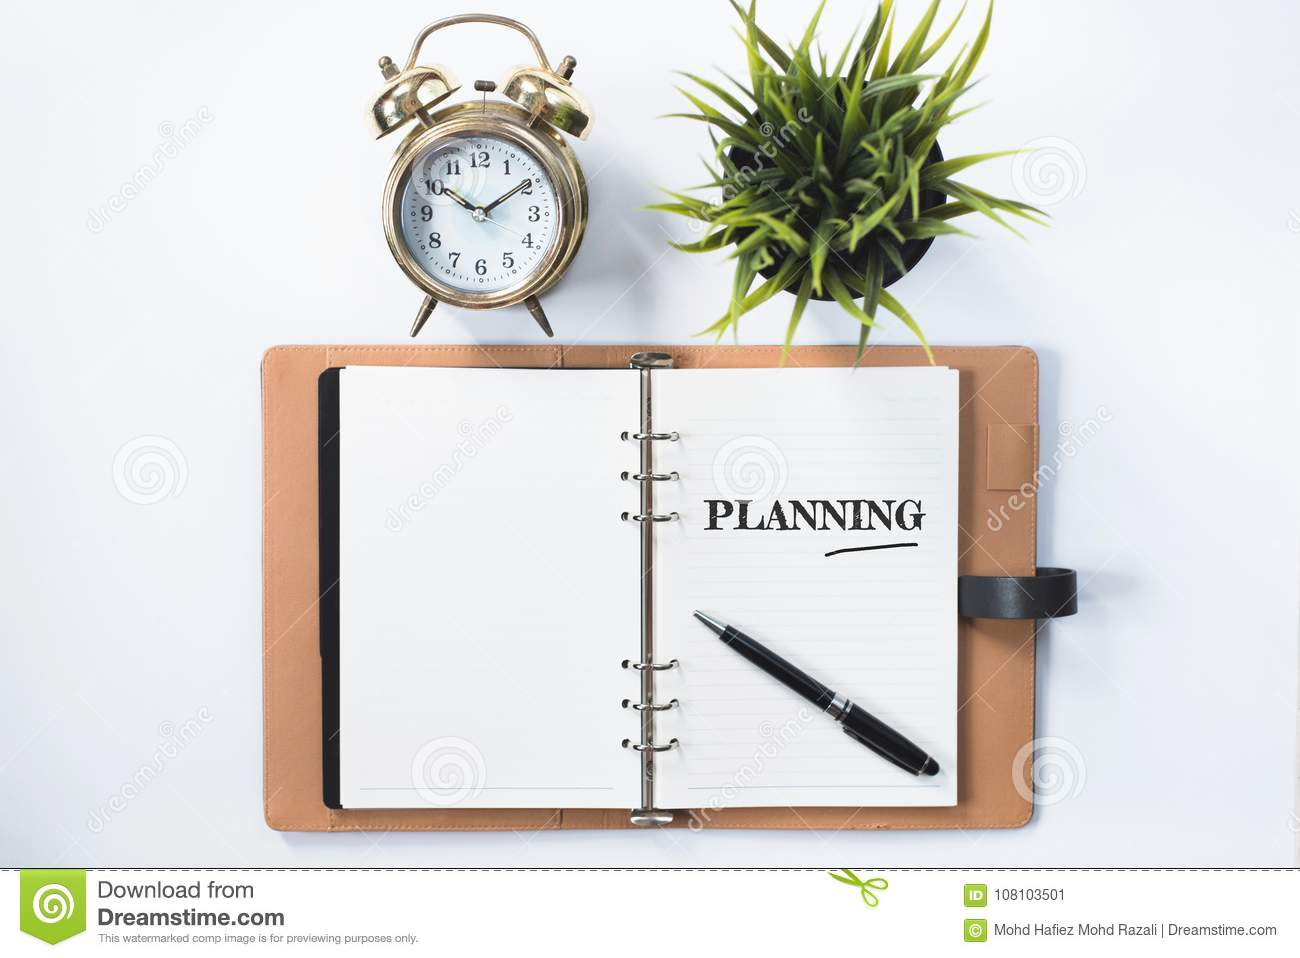 Clock, green plant and blank notebook with PLANNING word